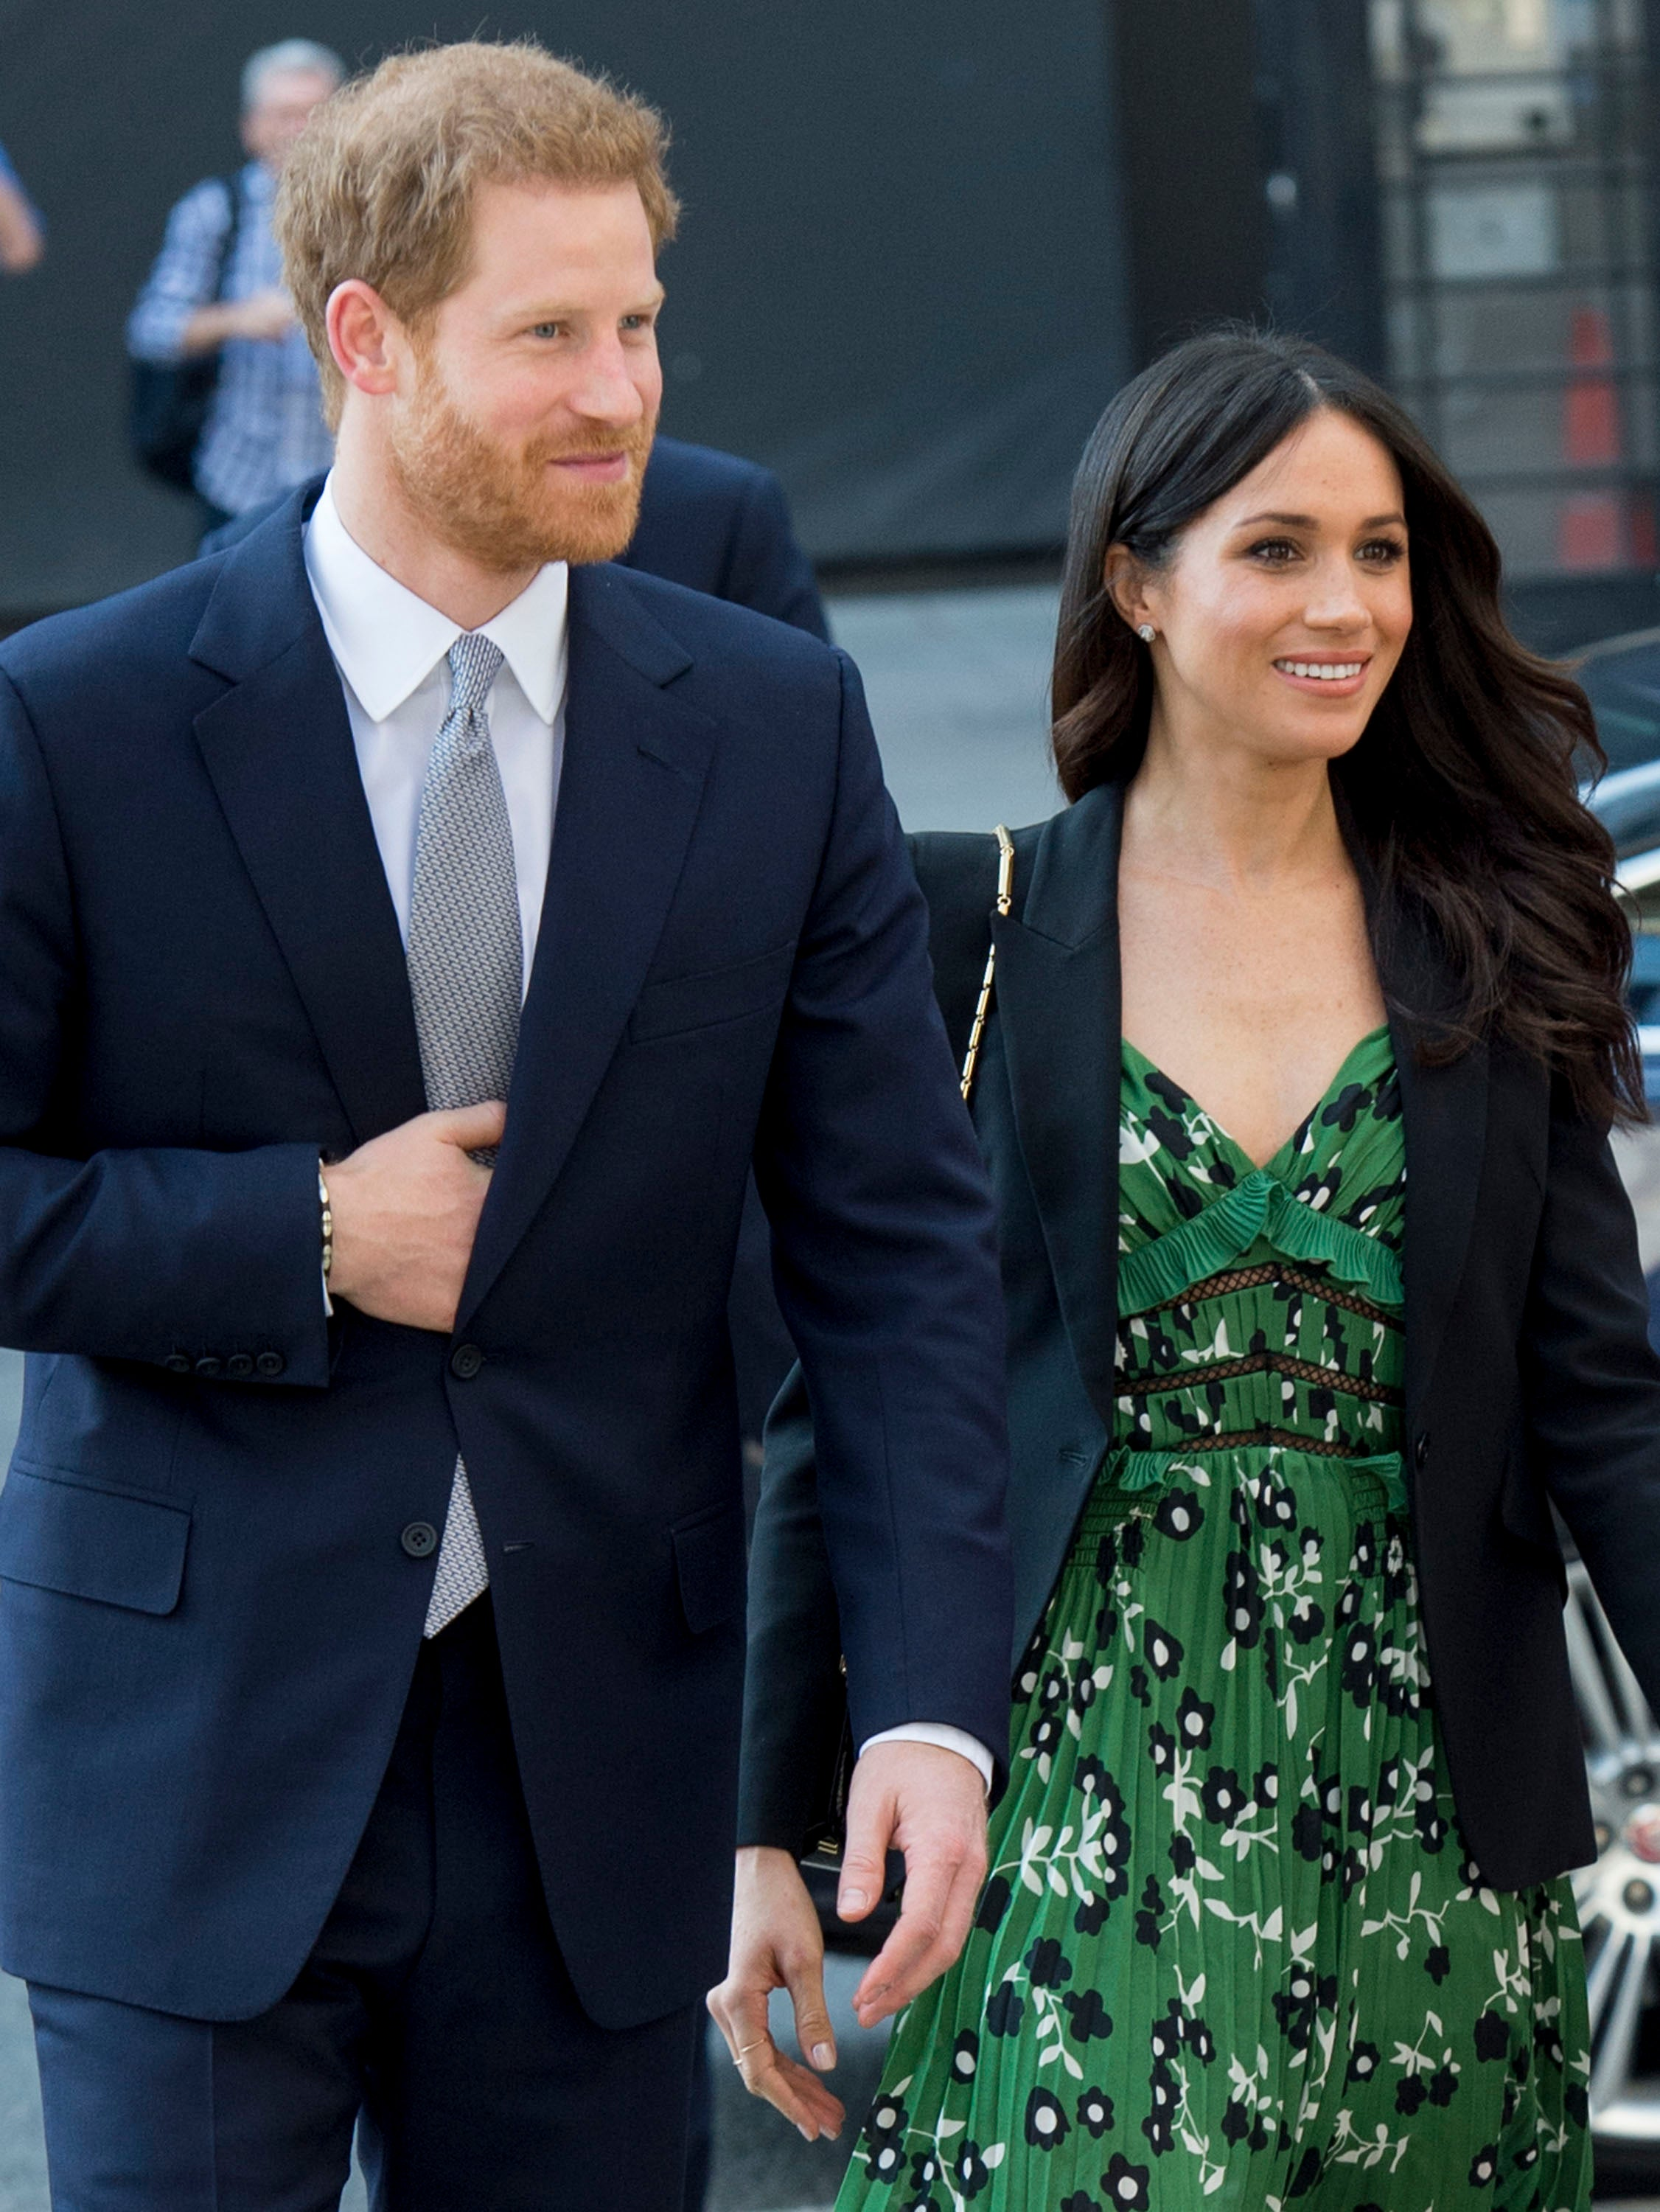 Doting Husband Prince Harry Reportedly Worries About Press 'Hysteria' Over Meghan Markle